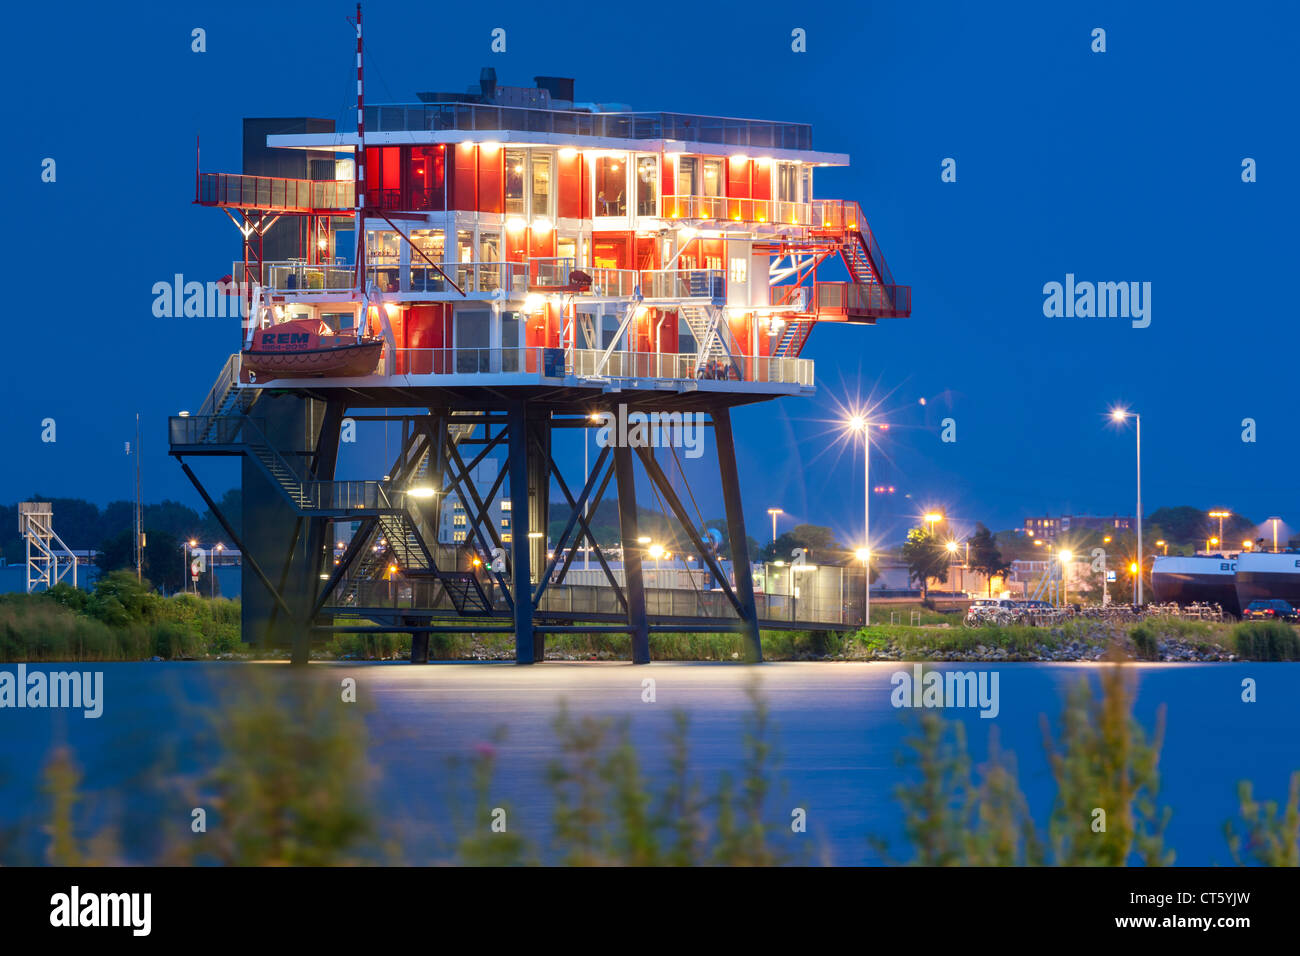 Amsterdam REM eiland, REM island restaurant. A former North Sea pirate TV station now in the Amsterdam harbor, harbour - Stock Image